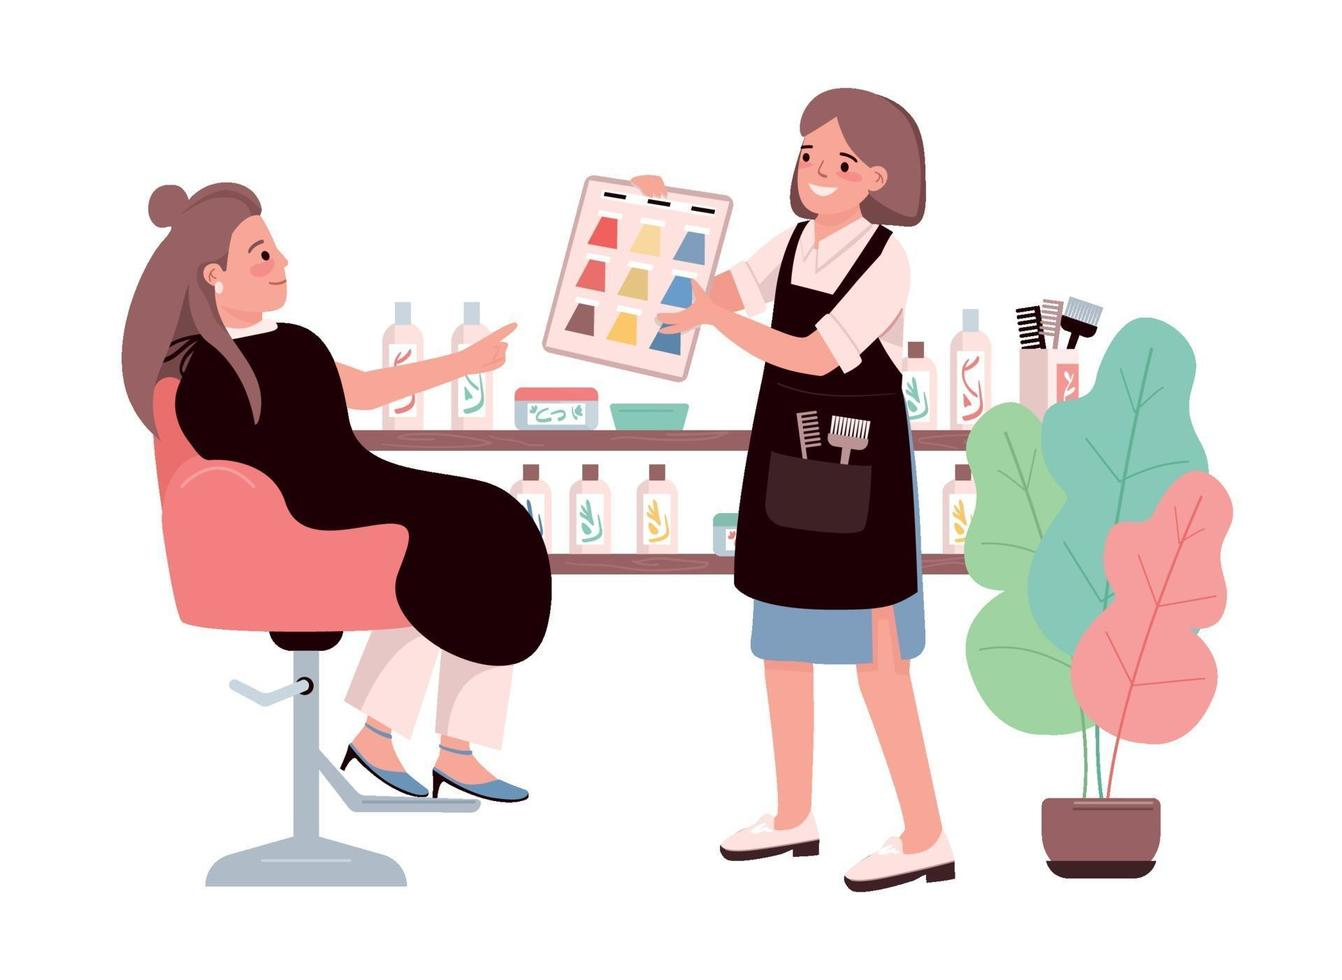 Hair coloring flat color vector characters. Young woman choosing hair dye. Getting coloration from hairdresser. Professional hairstylist. Beauty salon procedure isolated cartoon illustration